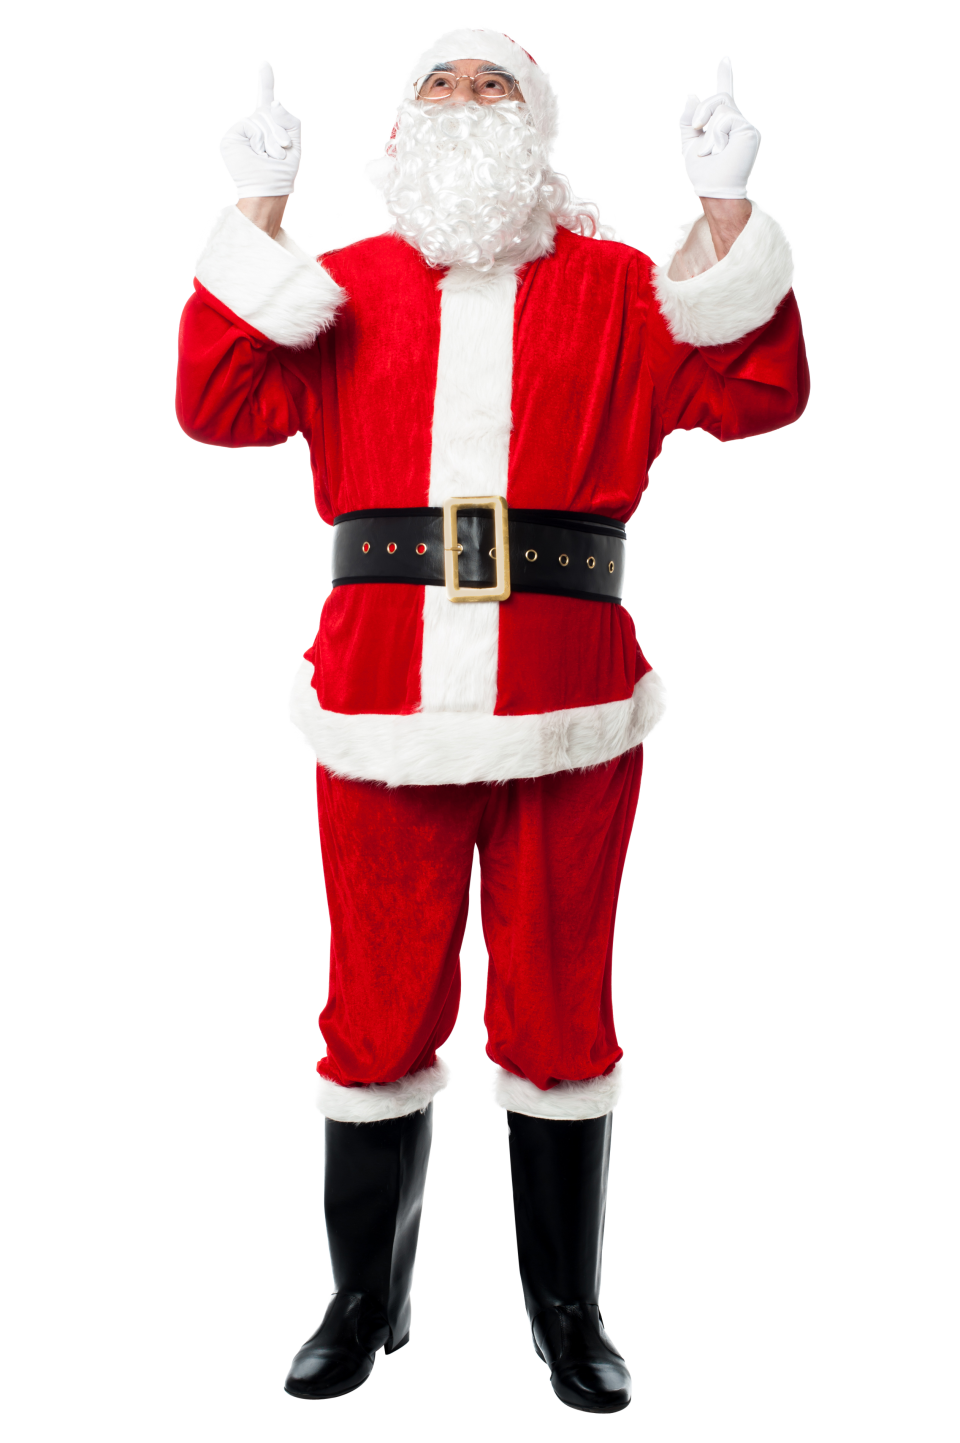 Santa Claus Holding Two Fingers Up PNG Image